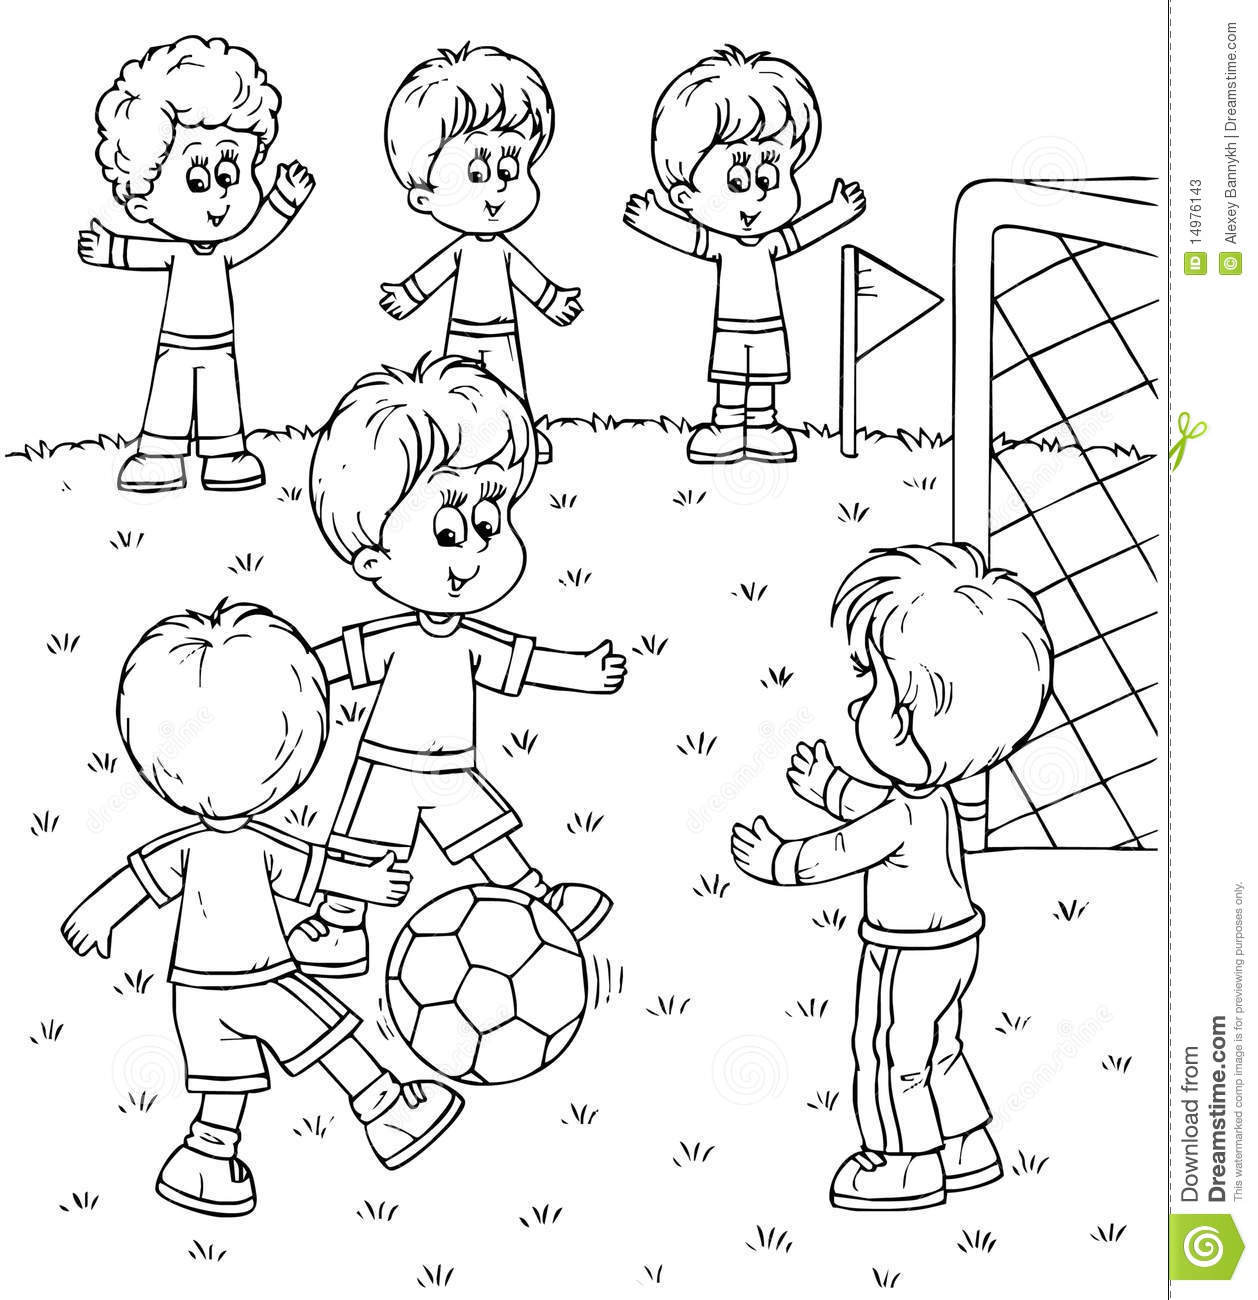 Black and white Illustration coloring Page Small Boys Playing